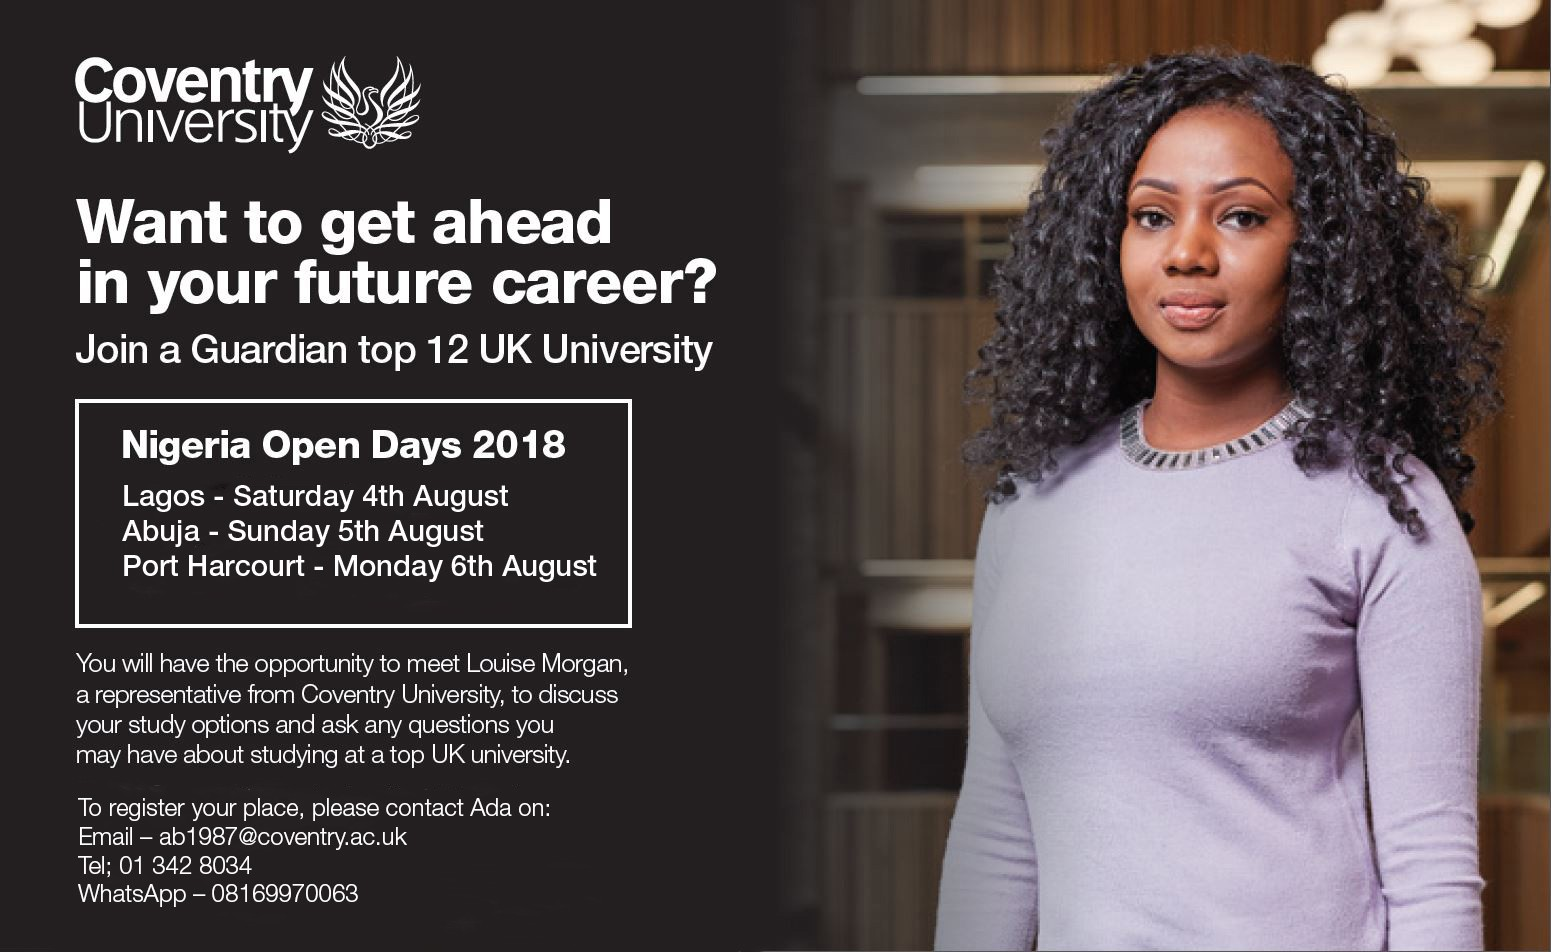 Want to get ahead in your future career? Join Coventry University